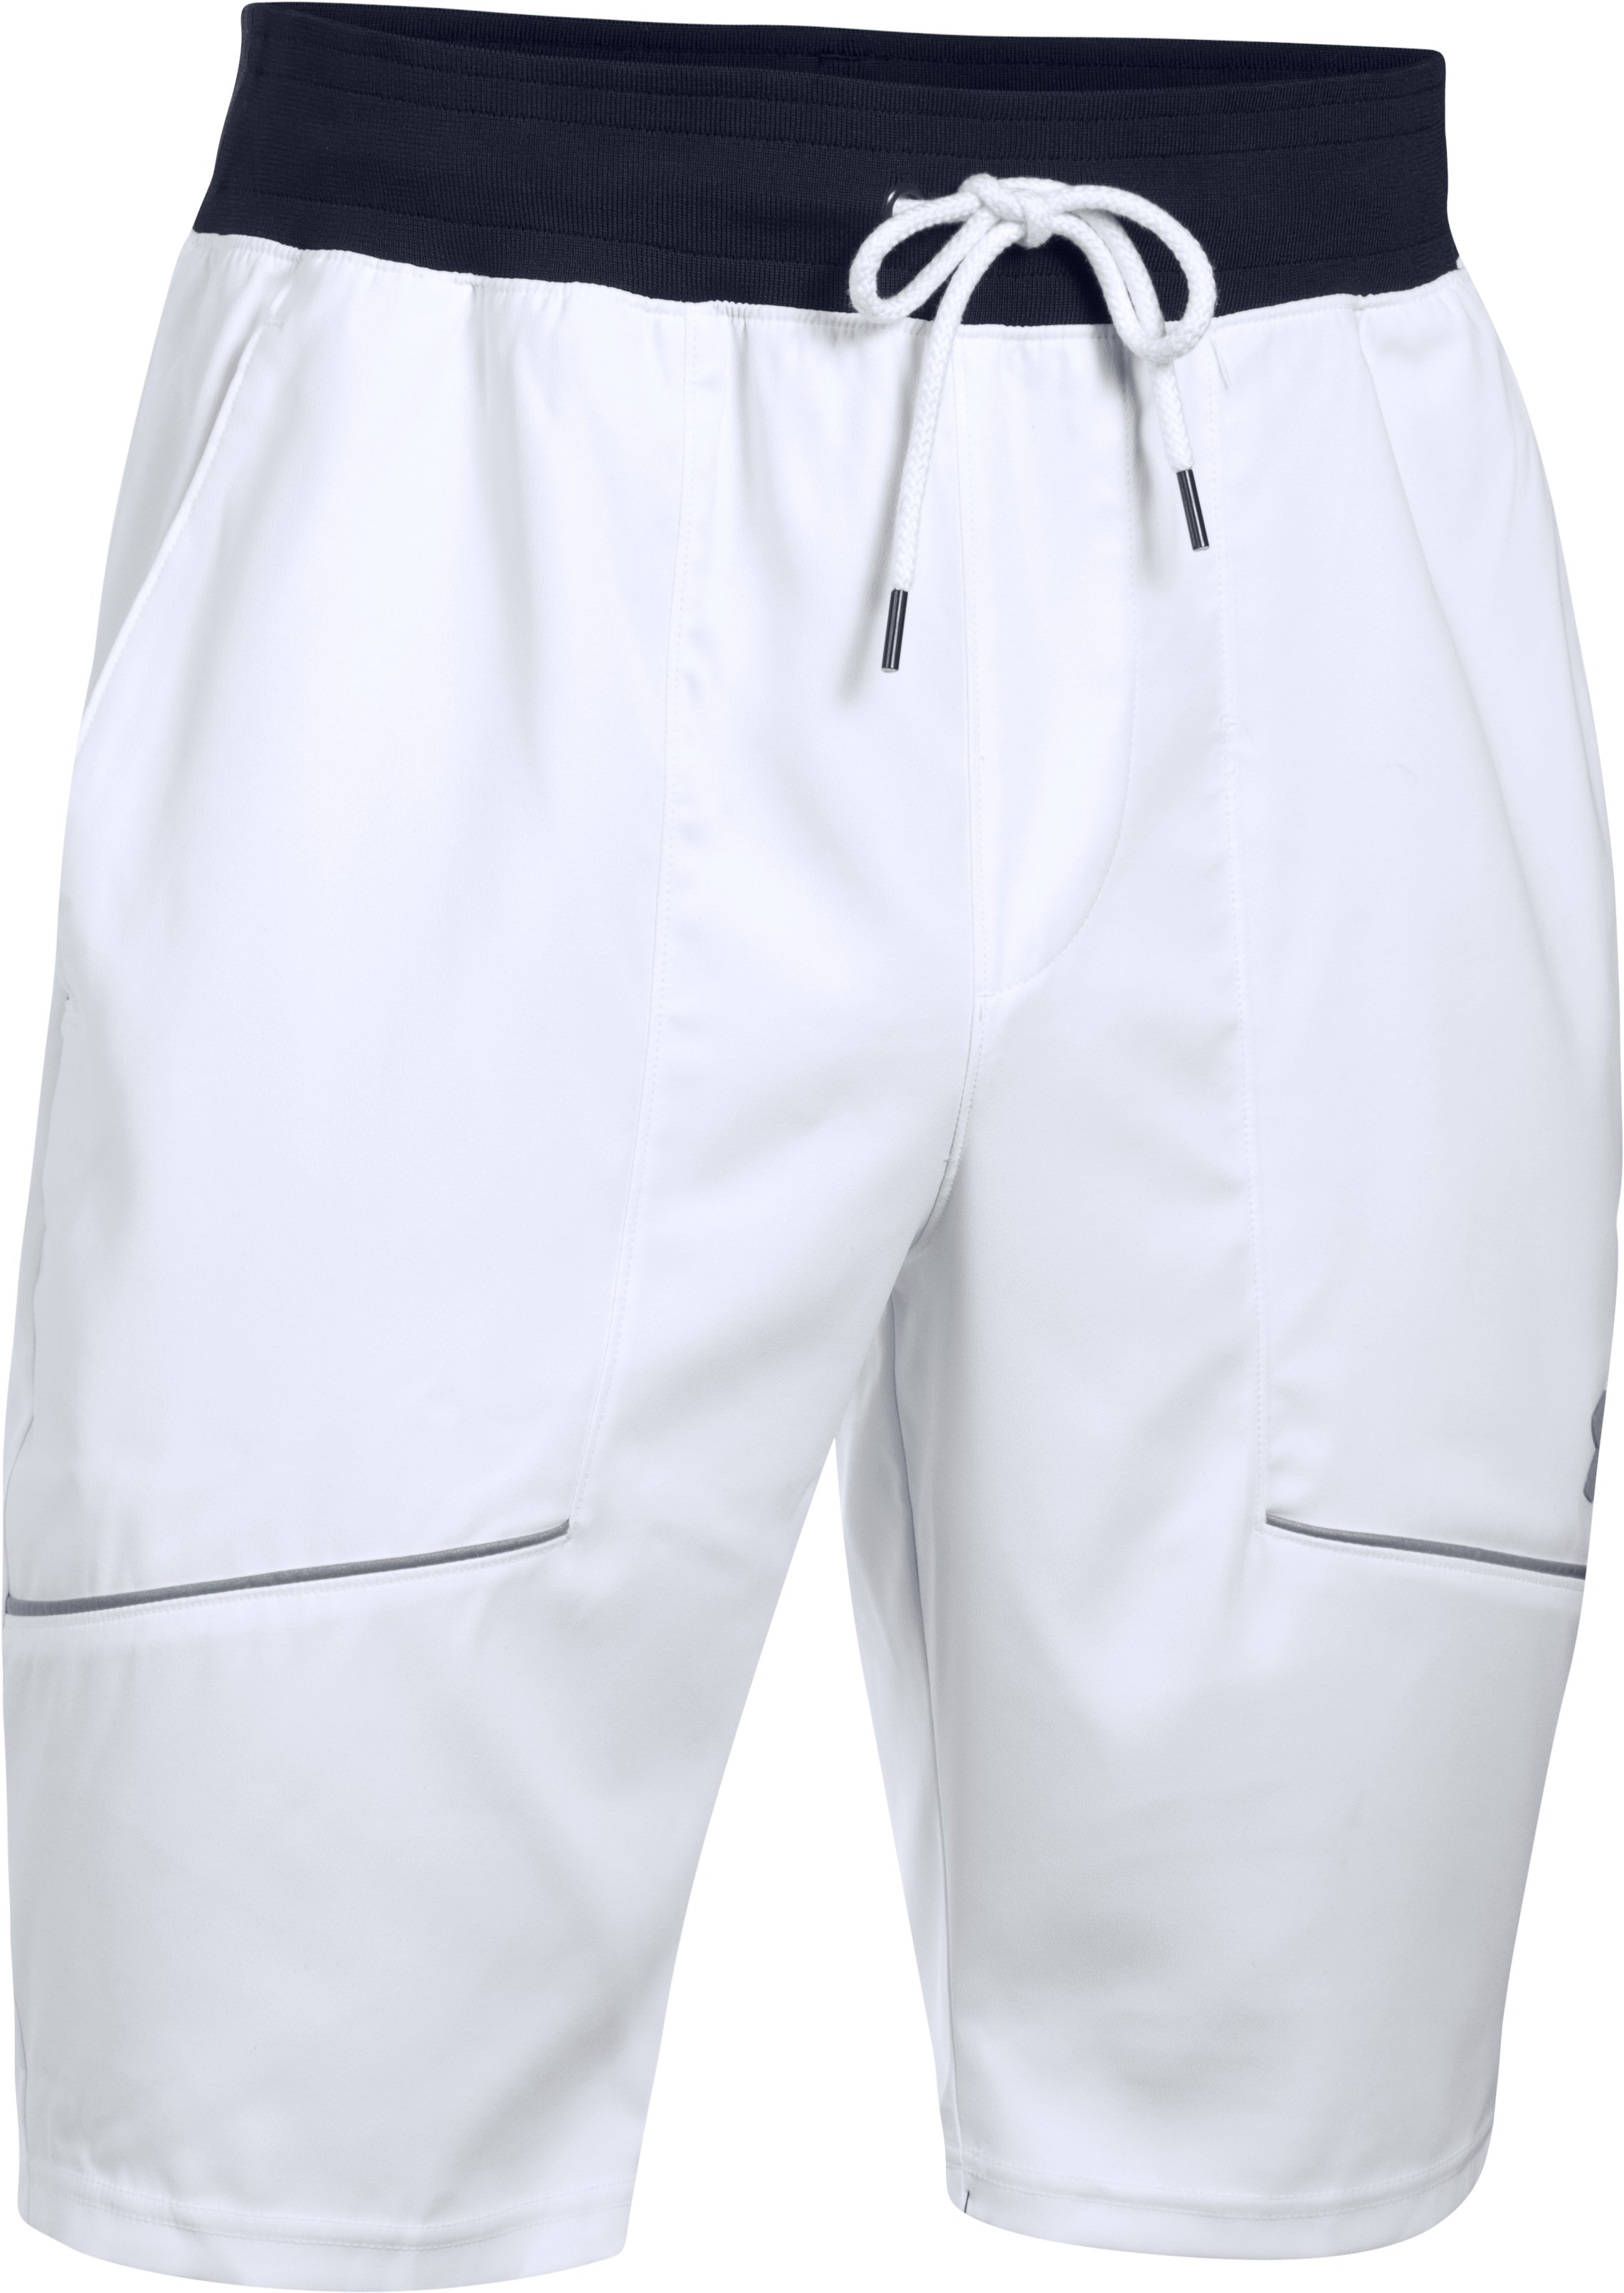 Men's SC30 Splash Cargo Shorts, White, undefined